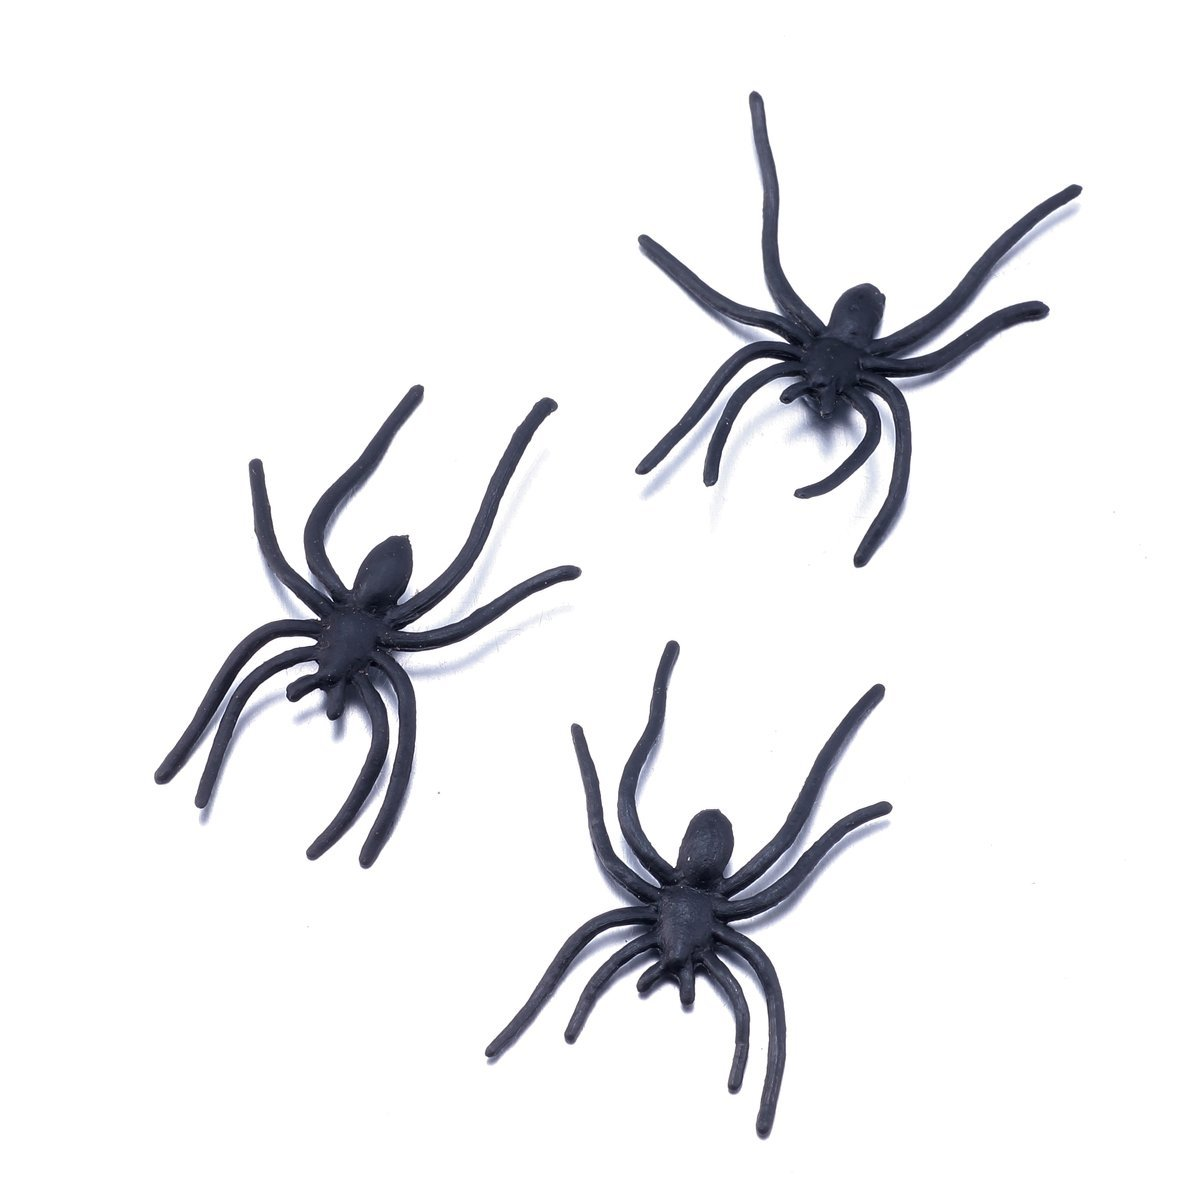 100 Artificial Spiders HALLOWEEN PROP